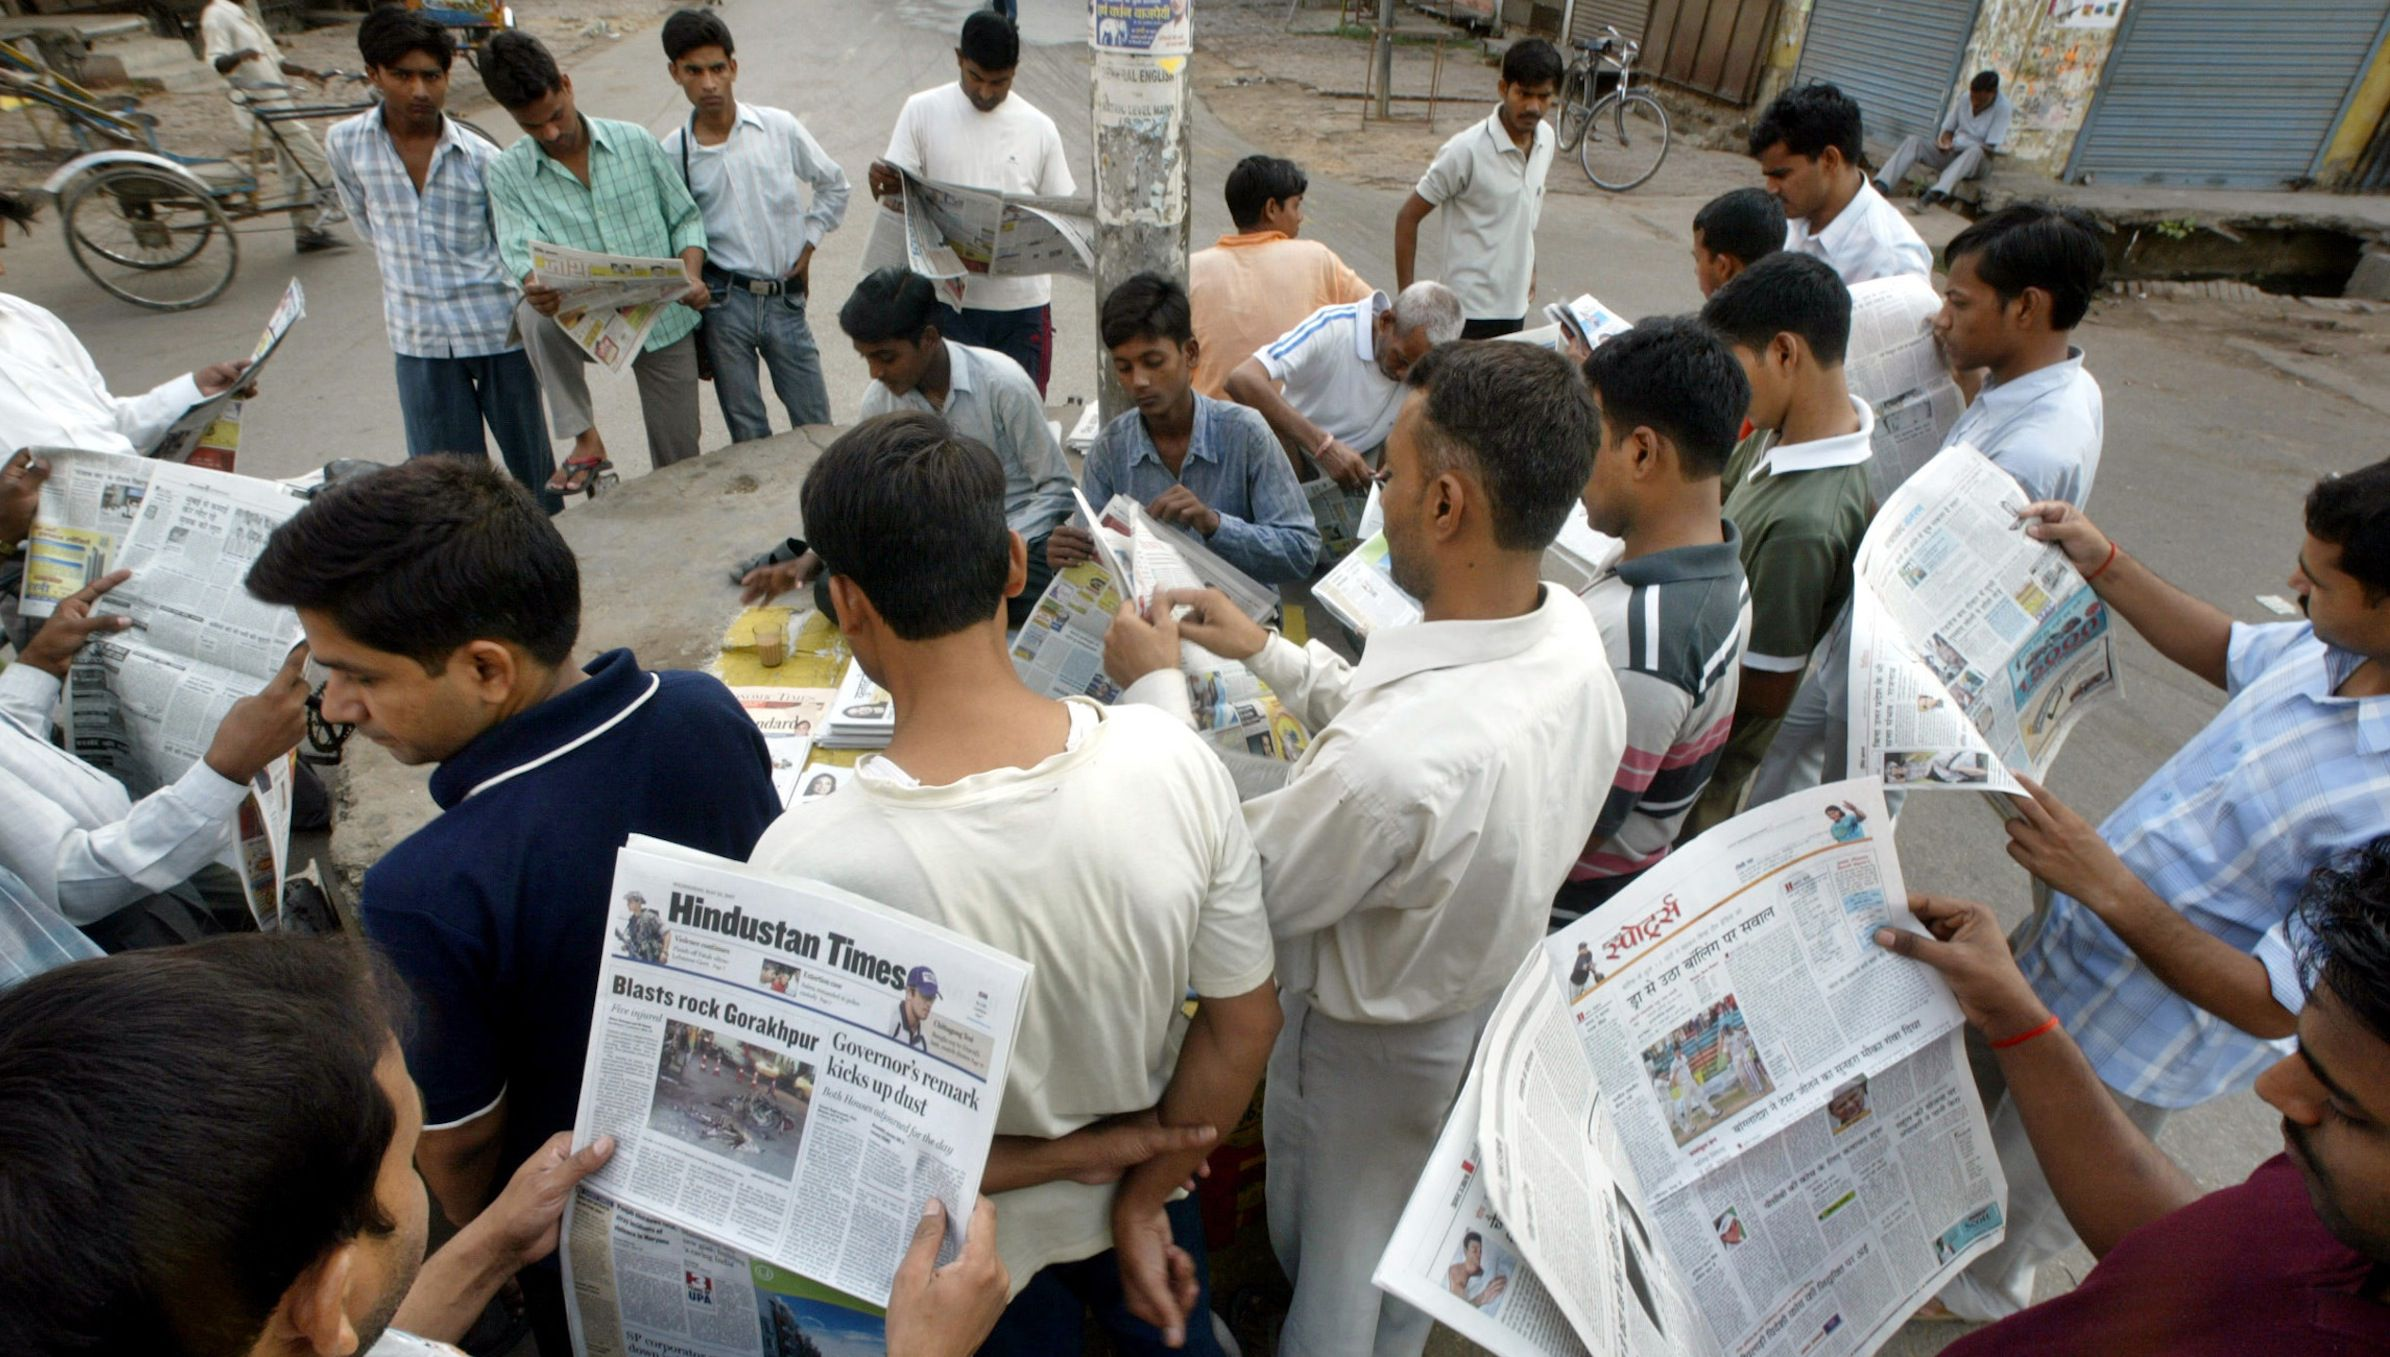 Allahabad University students read newspapers early morning around a newspaper vendor on a roadside, in the northern Indian city of Allahabad, Wednesday, May 23, 2007. Obituaries for newspapers are already being written in the United States but more than 150 million people read a newspaper every day in India, compared to 97 million Americans, and circulation numbers are soaring, and advertising is expected to grow by 15 percent this year. Roughly 11 million English newspapers are sold every day, while nearly 34 million Hindi papers are sold, according to India's Registrar of Newspapers. (AP Photo/Rajesh Kumar Singh)